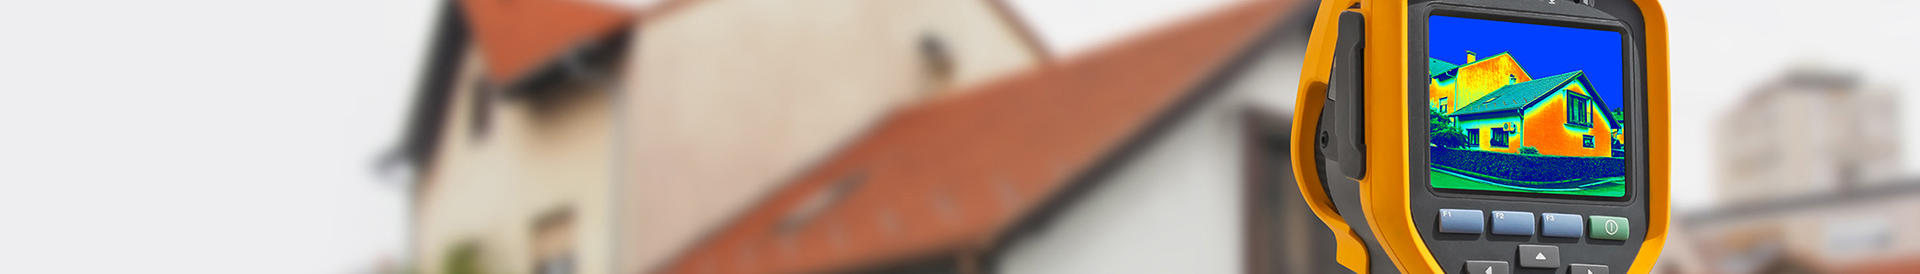 banner pomiary